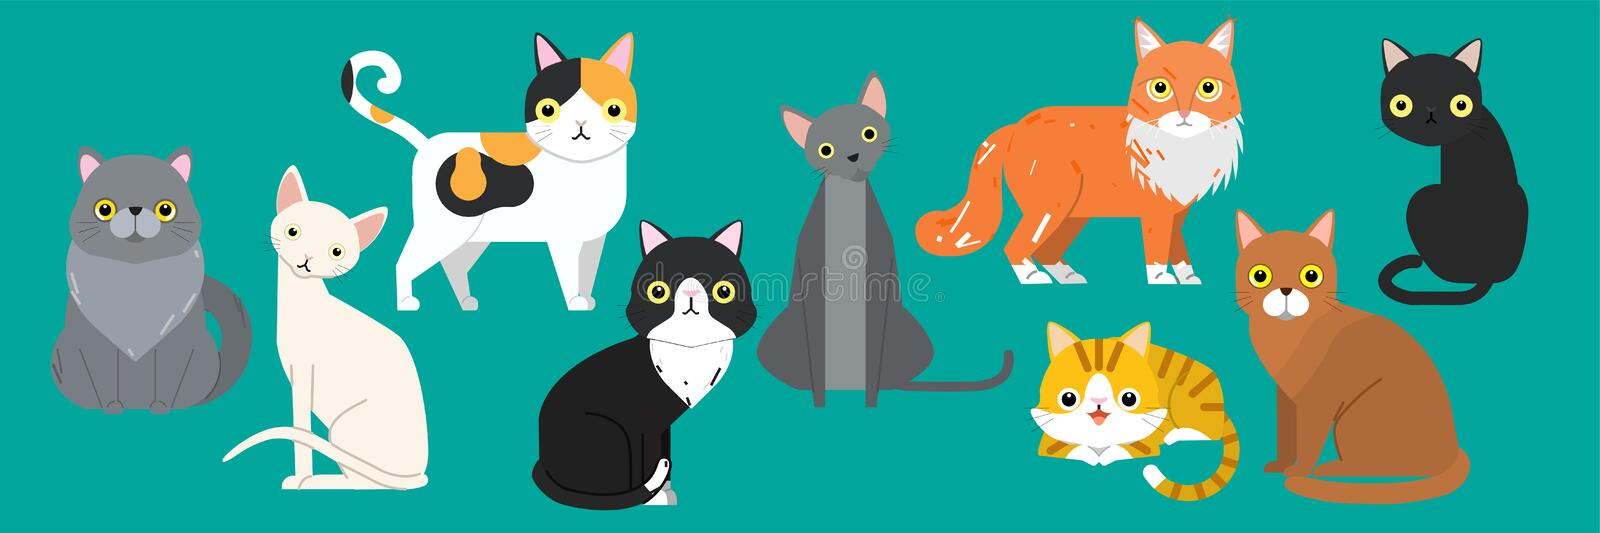 Funny cartoon cats characters different breeds cute pet animal set stock illustration